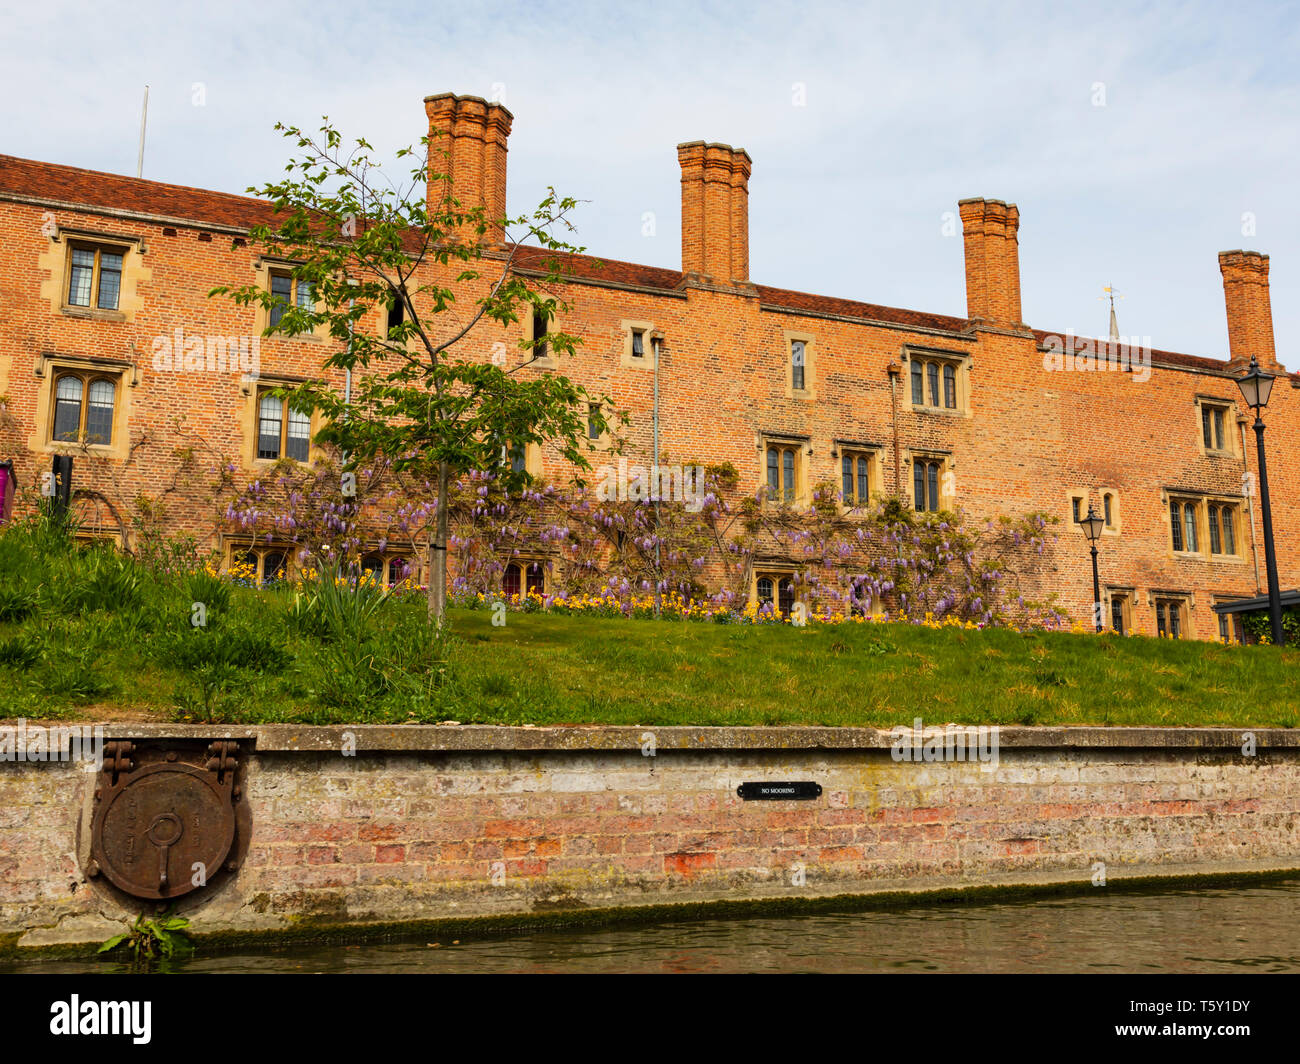 Magdelene College from the River Cam, University town of Cambridge, Cambridgeshire, England - Stock Image